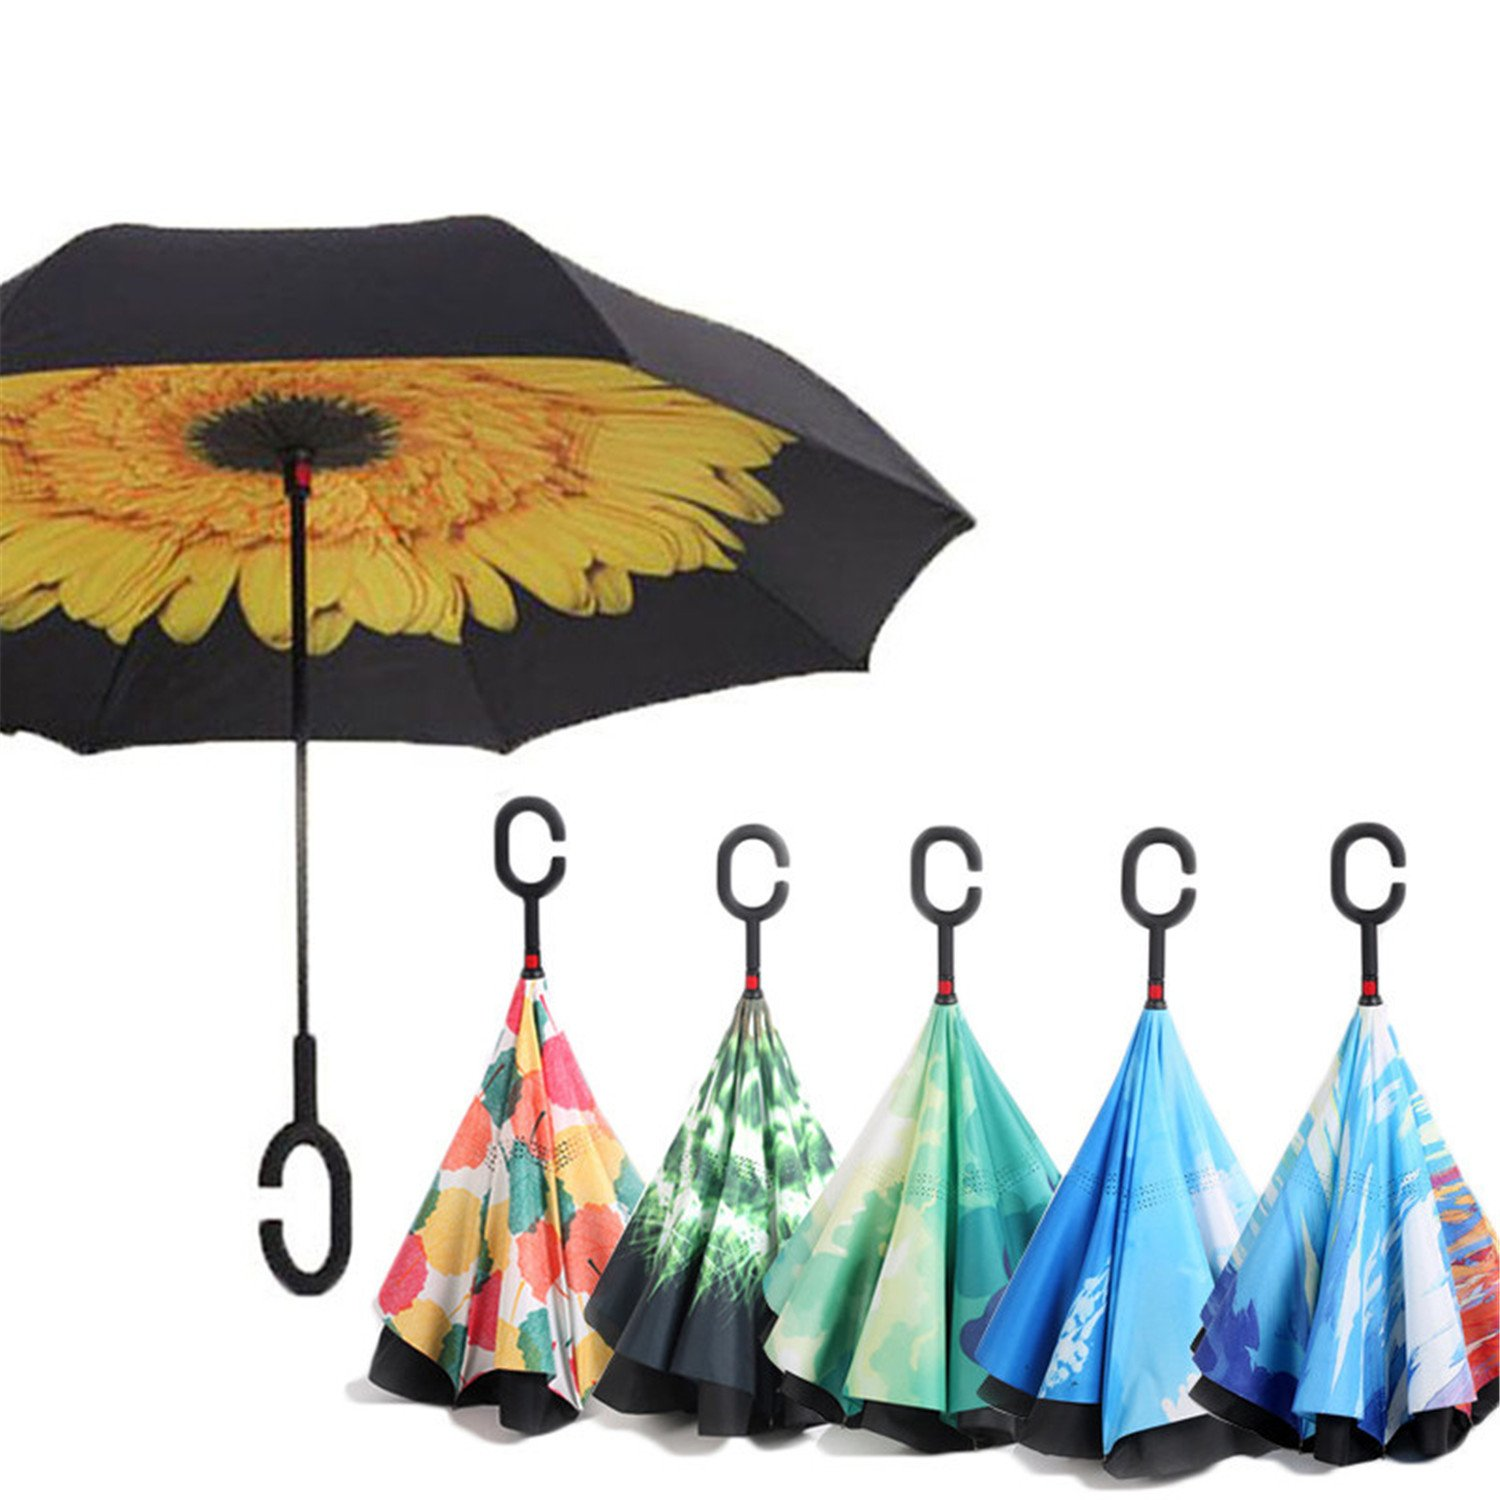 Amazon.com: Hogonta Reverse Umbrellas Folding Double Layer Inverted C Hand Holder Stand Rain Windproof Rolling Over Umbrella Black: Sports & Outdoors